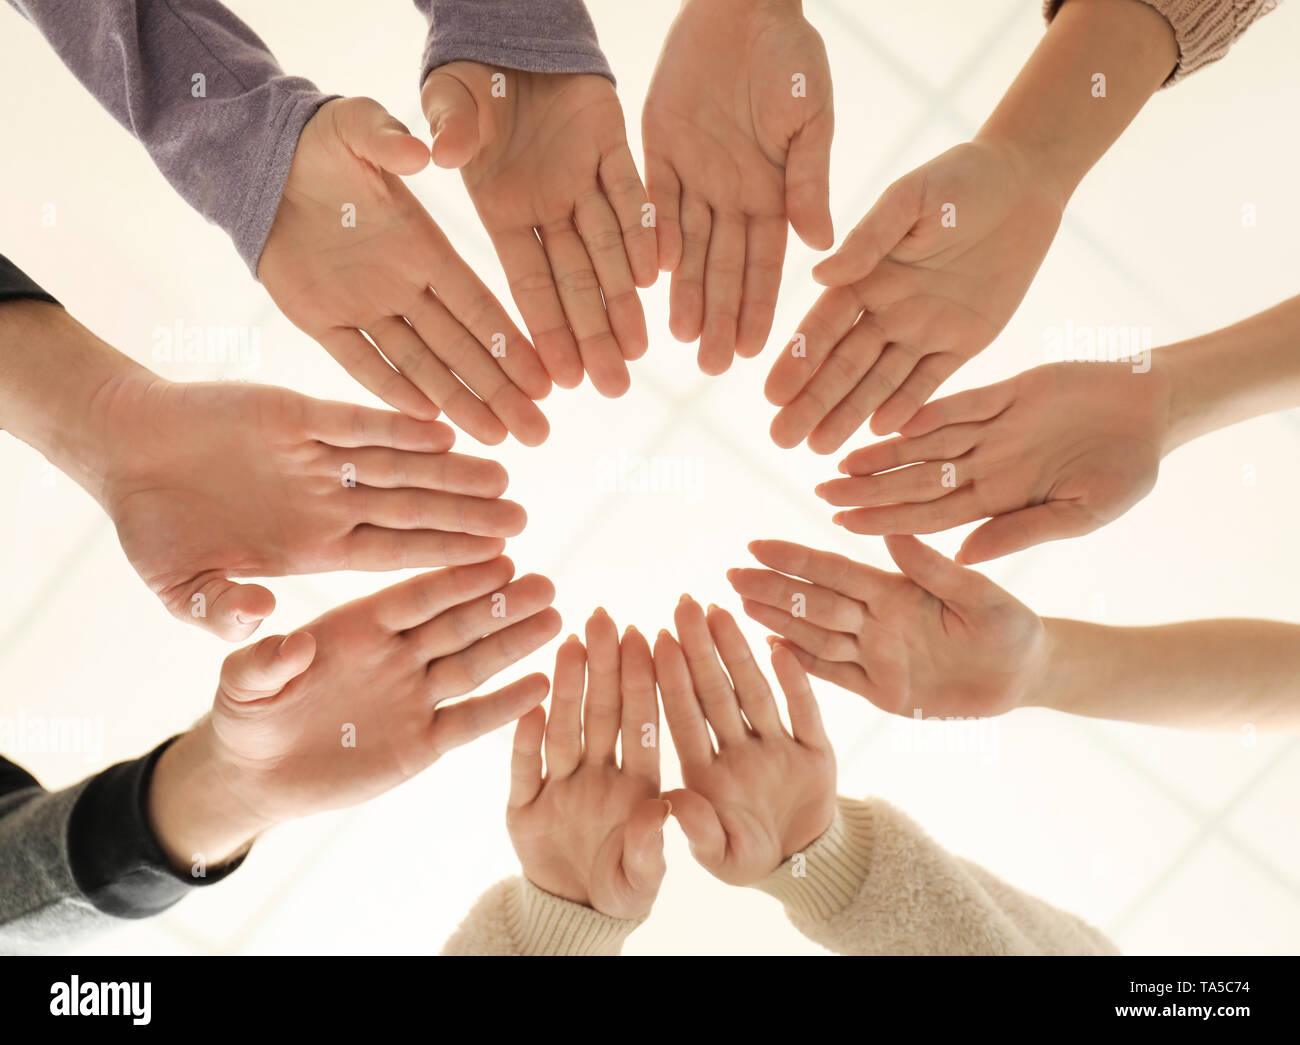 People Putting Hands Together As Symbol Of Unity Stock Photo Alamy